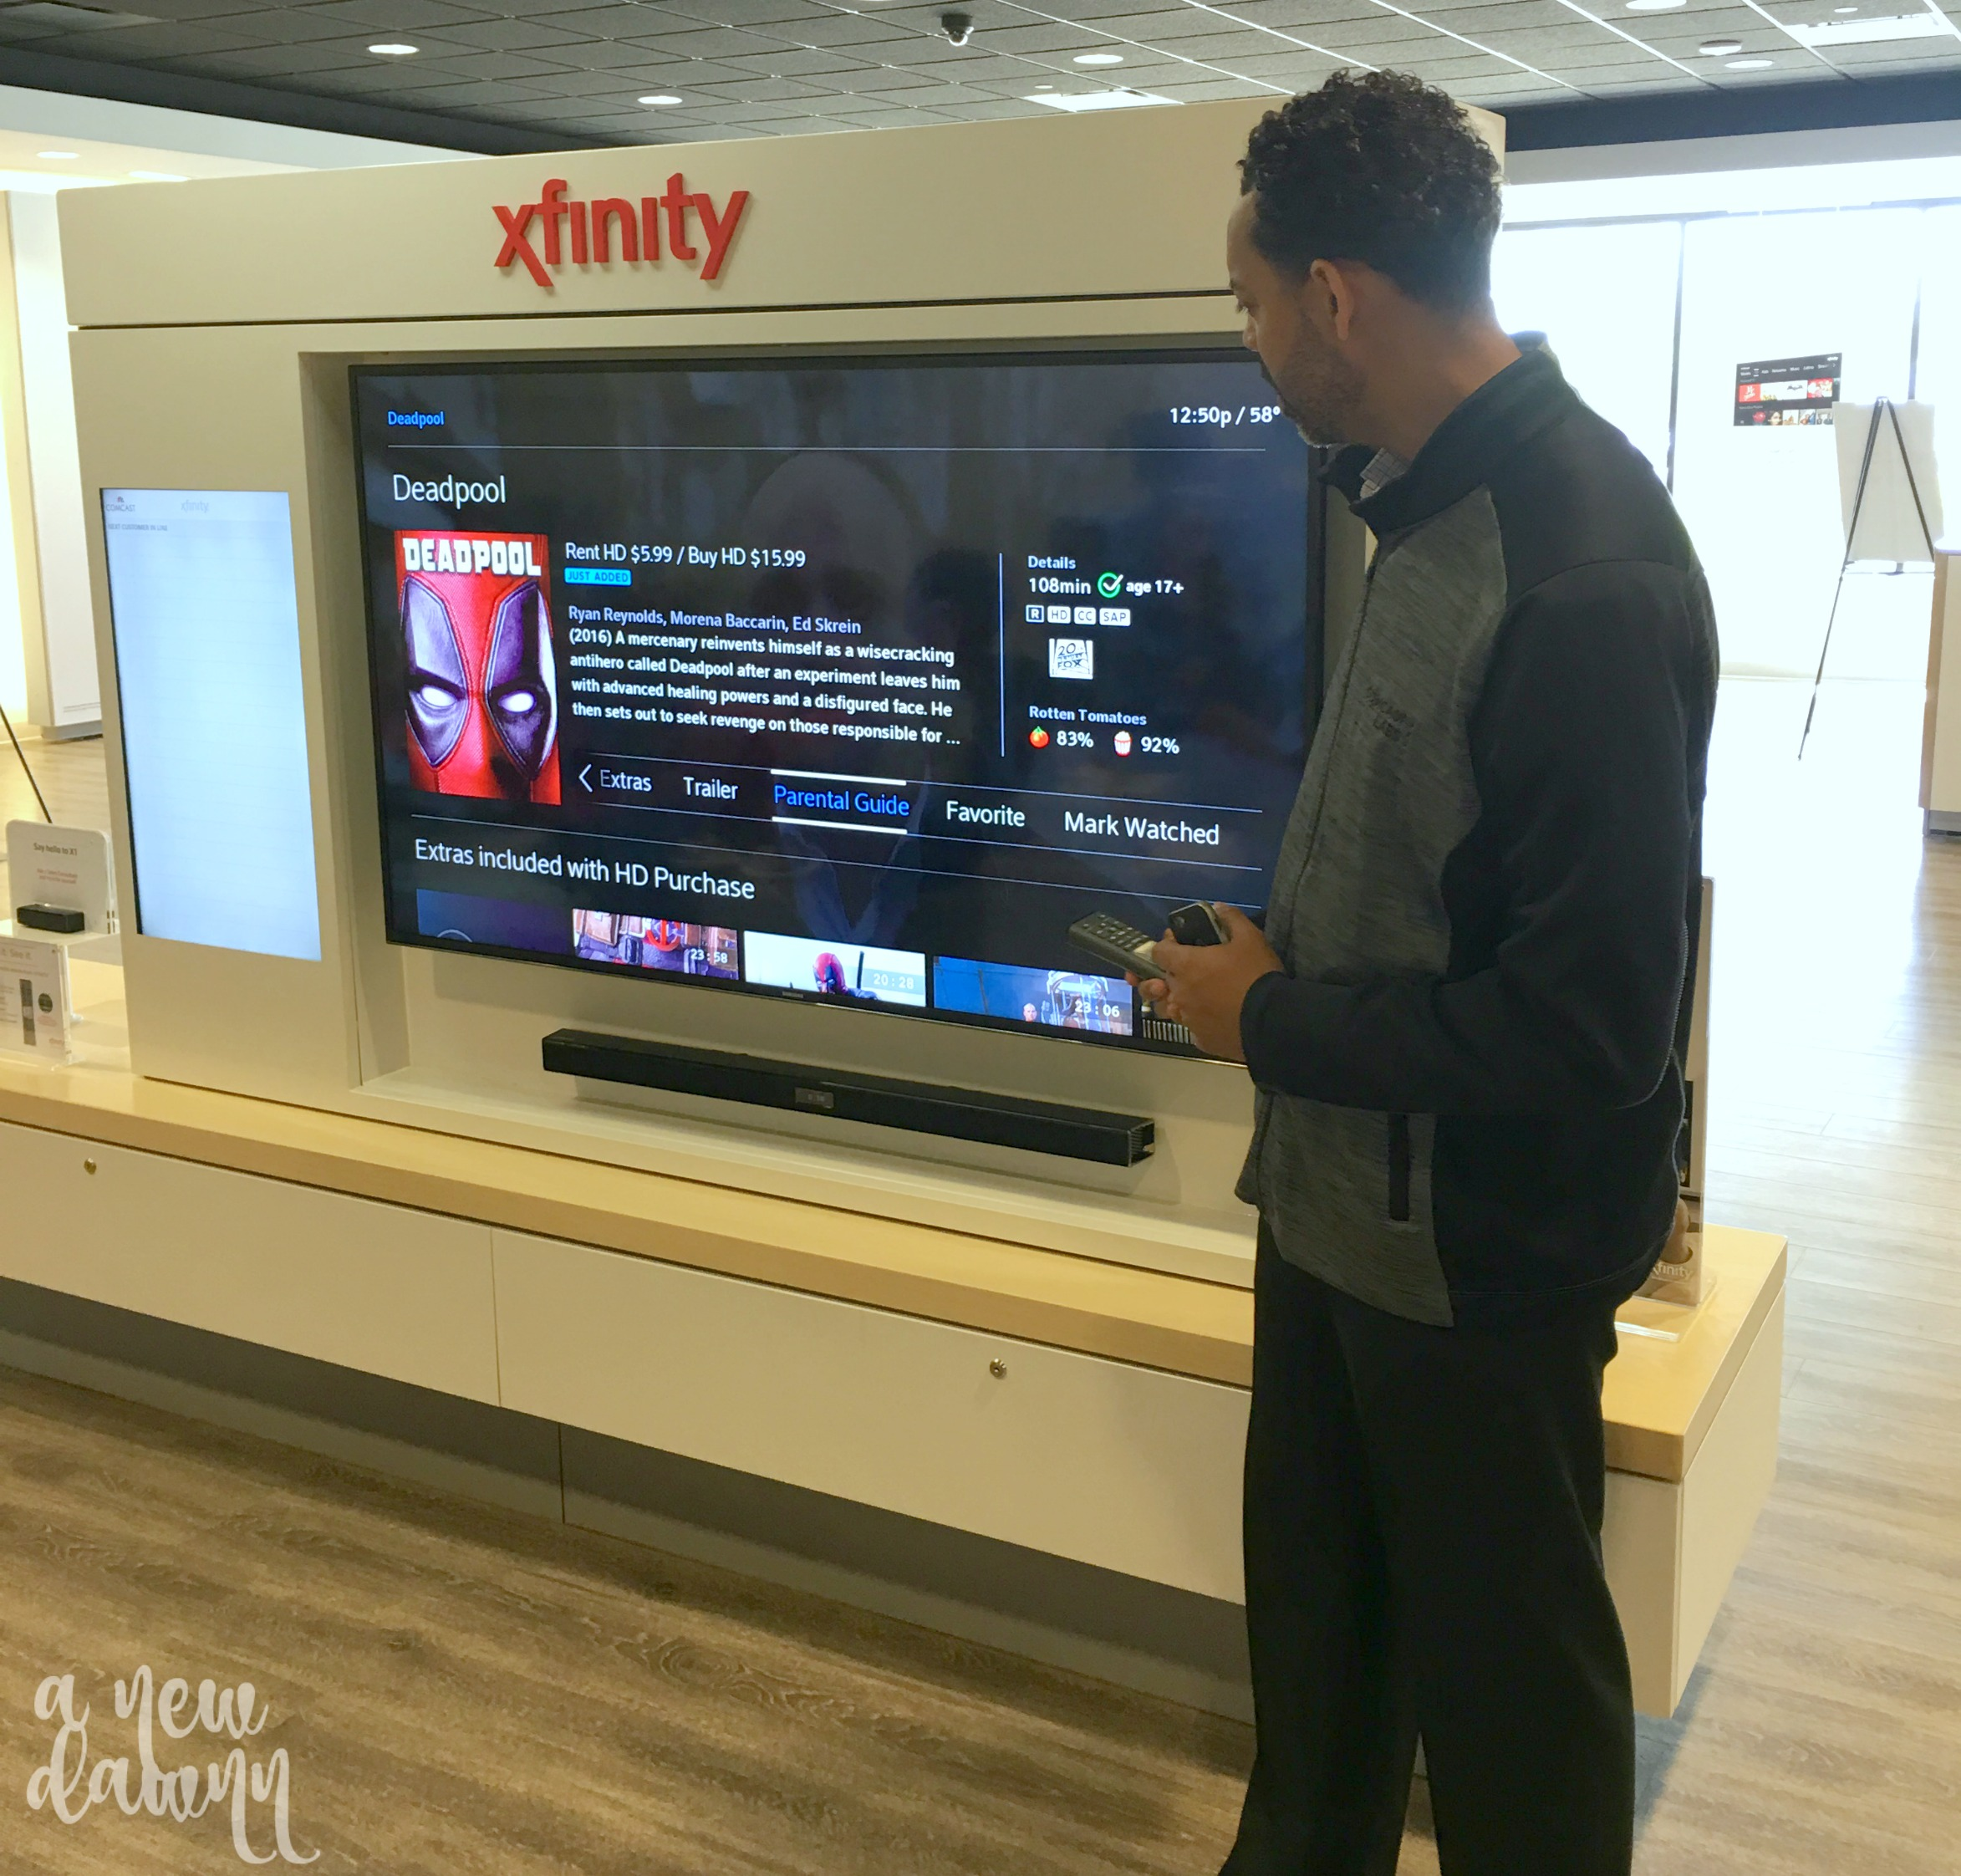 xfinity-parental-guide